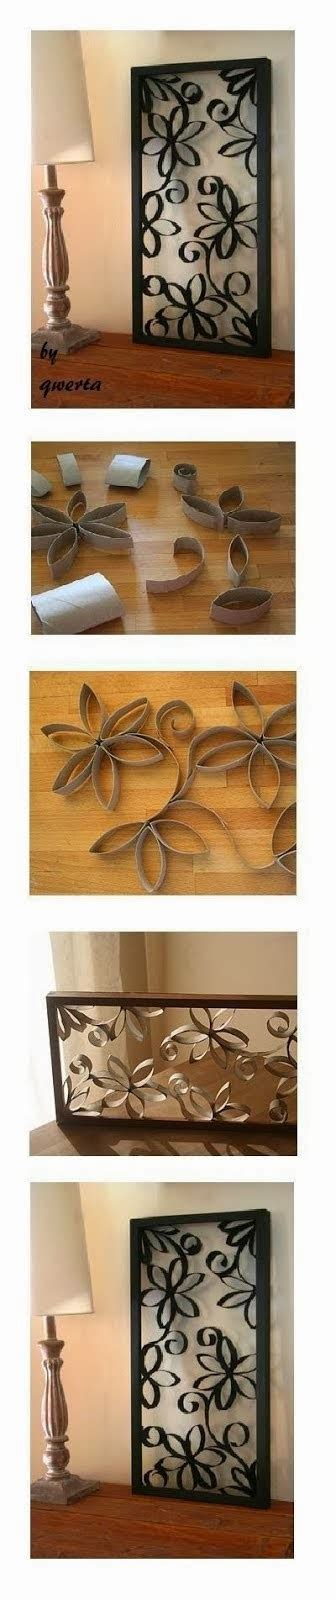 ready     diy toilet paper roll wall decoration